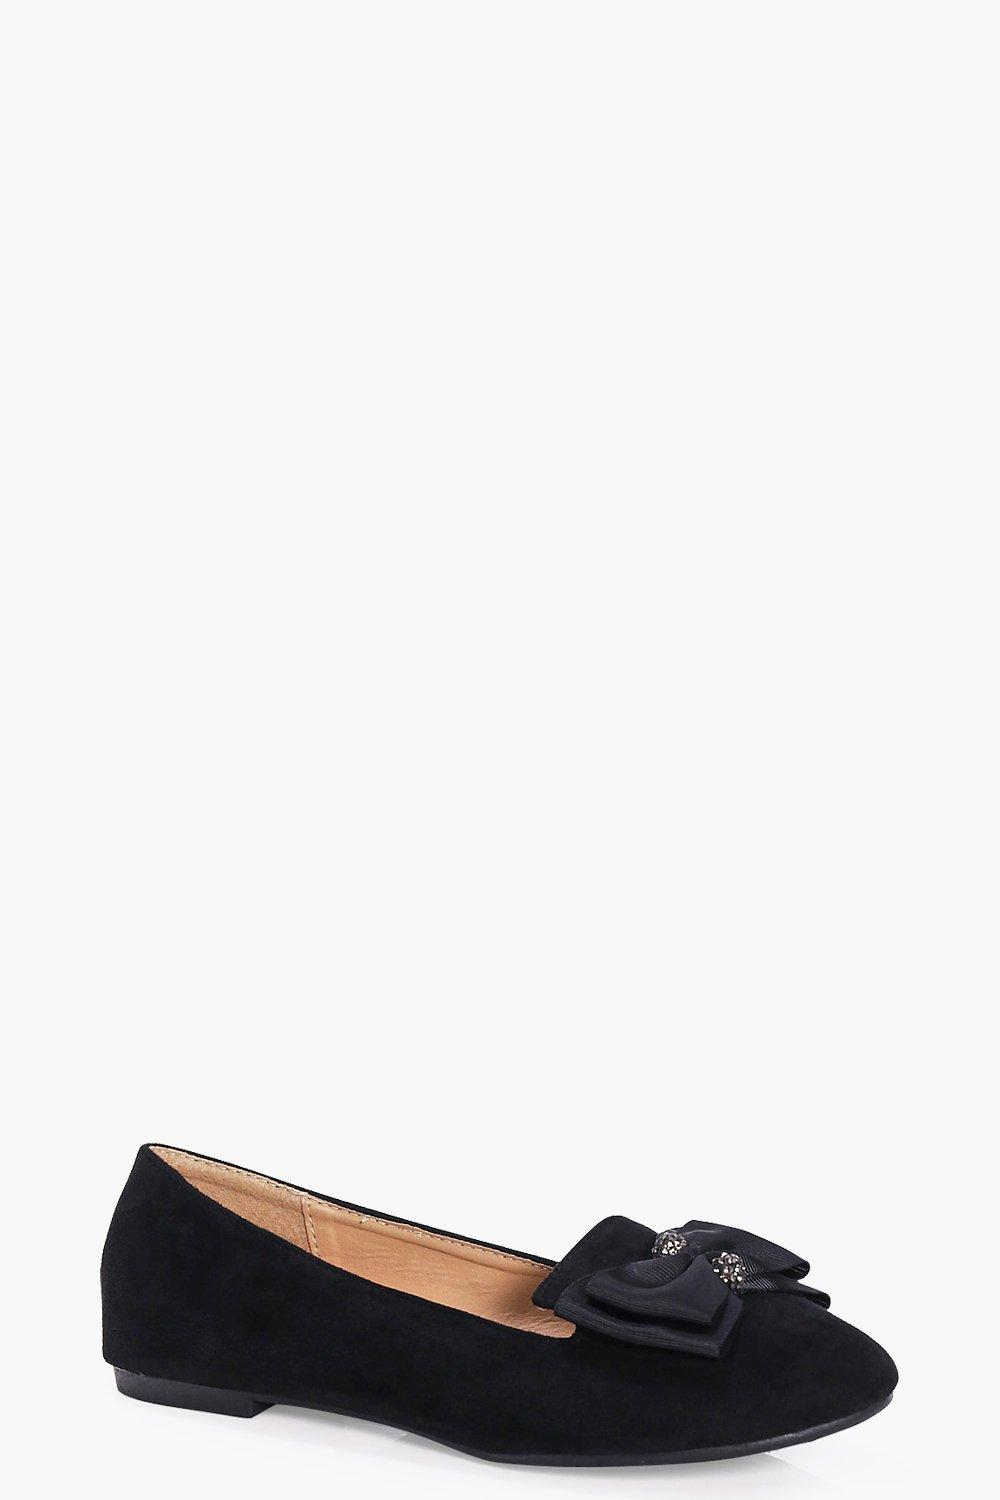 Lucy Bow And Diamante Trim Slipper